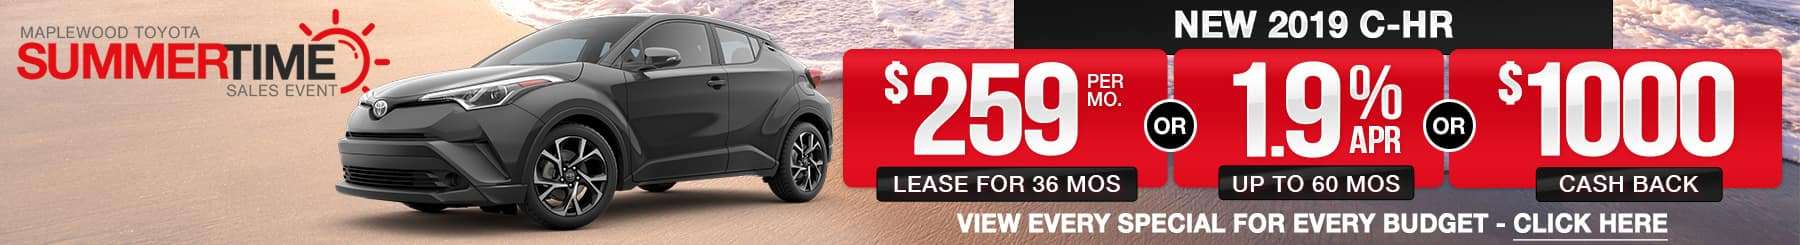 Toyota C-HR Lease Finance Offers